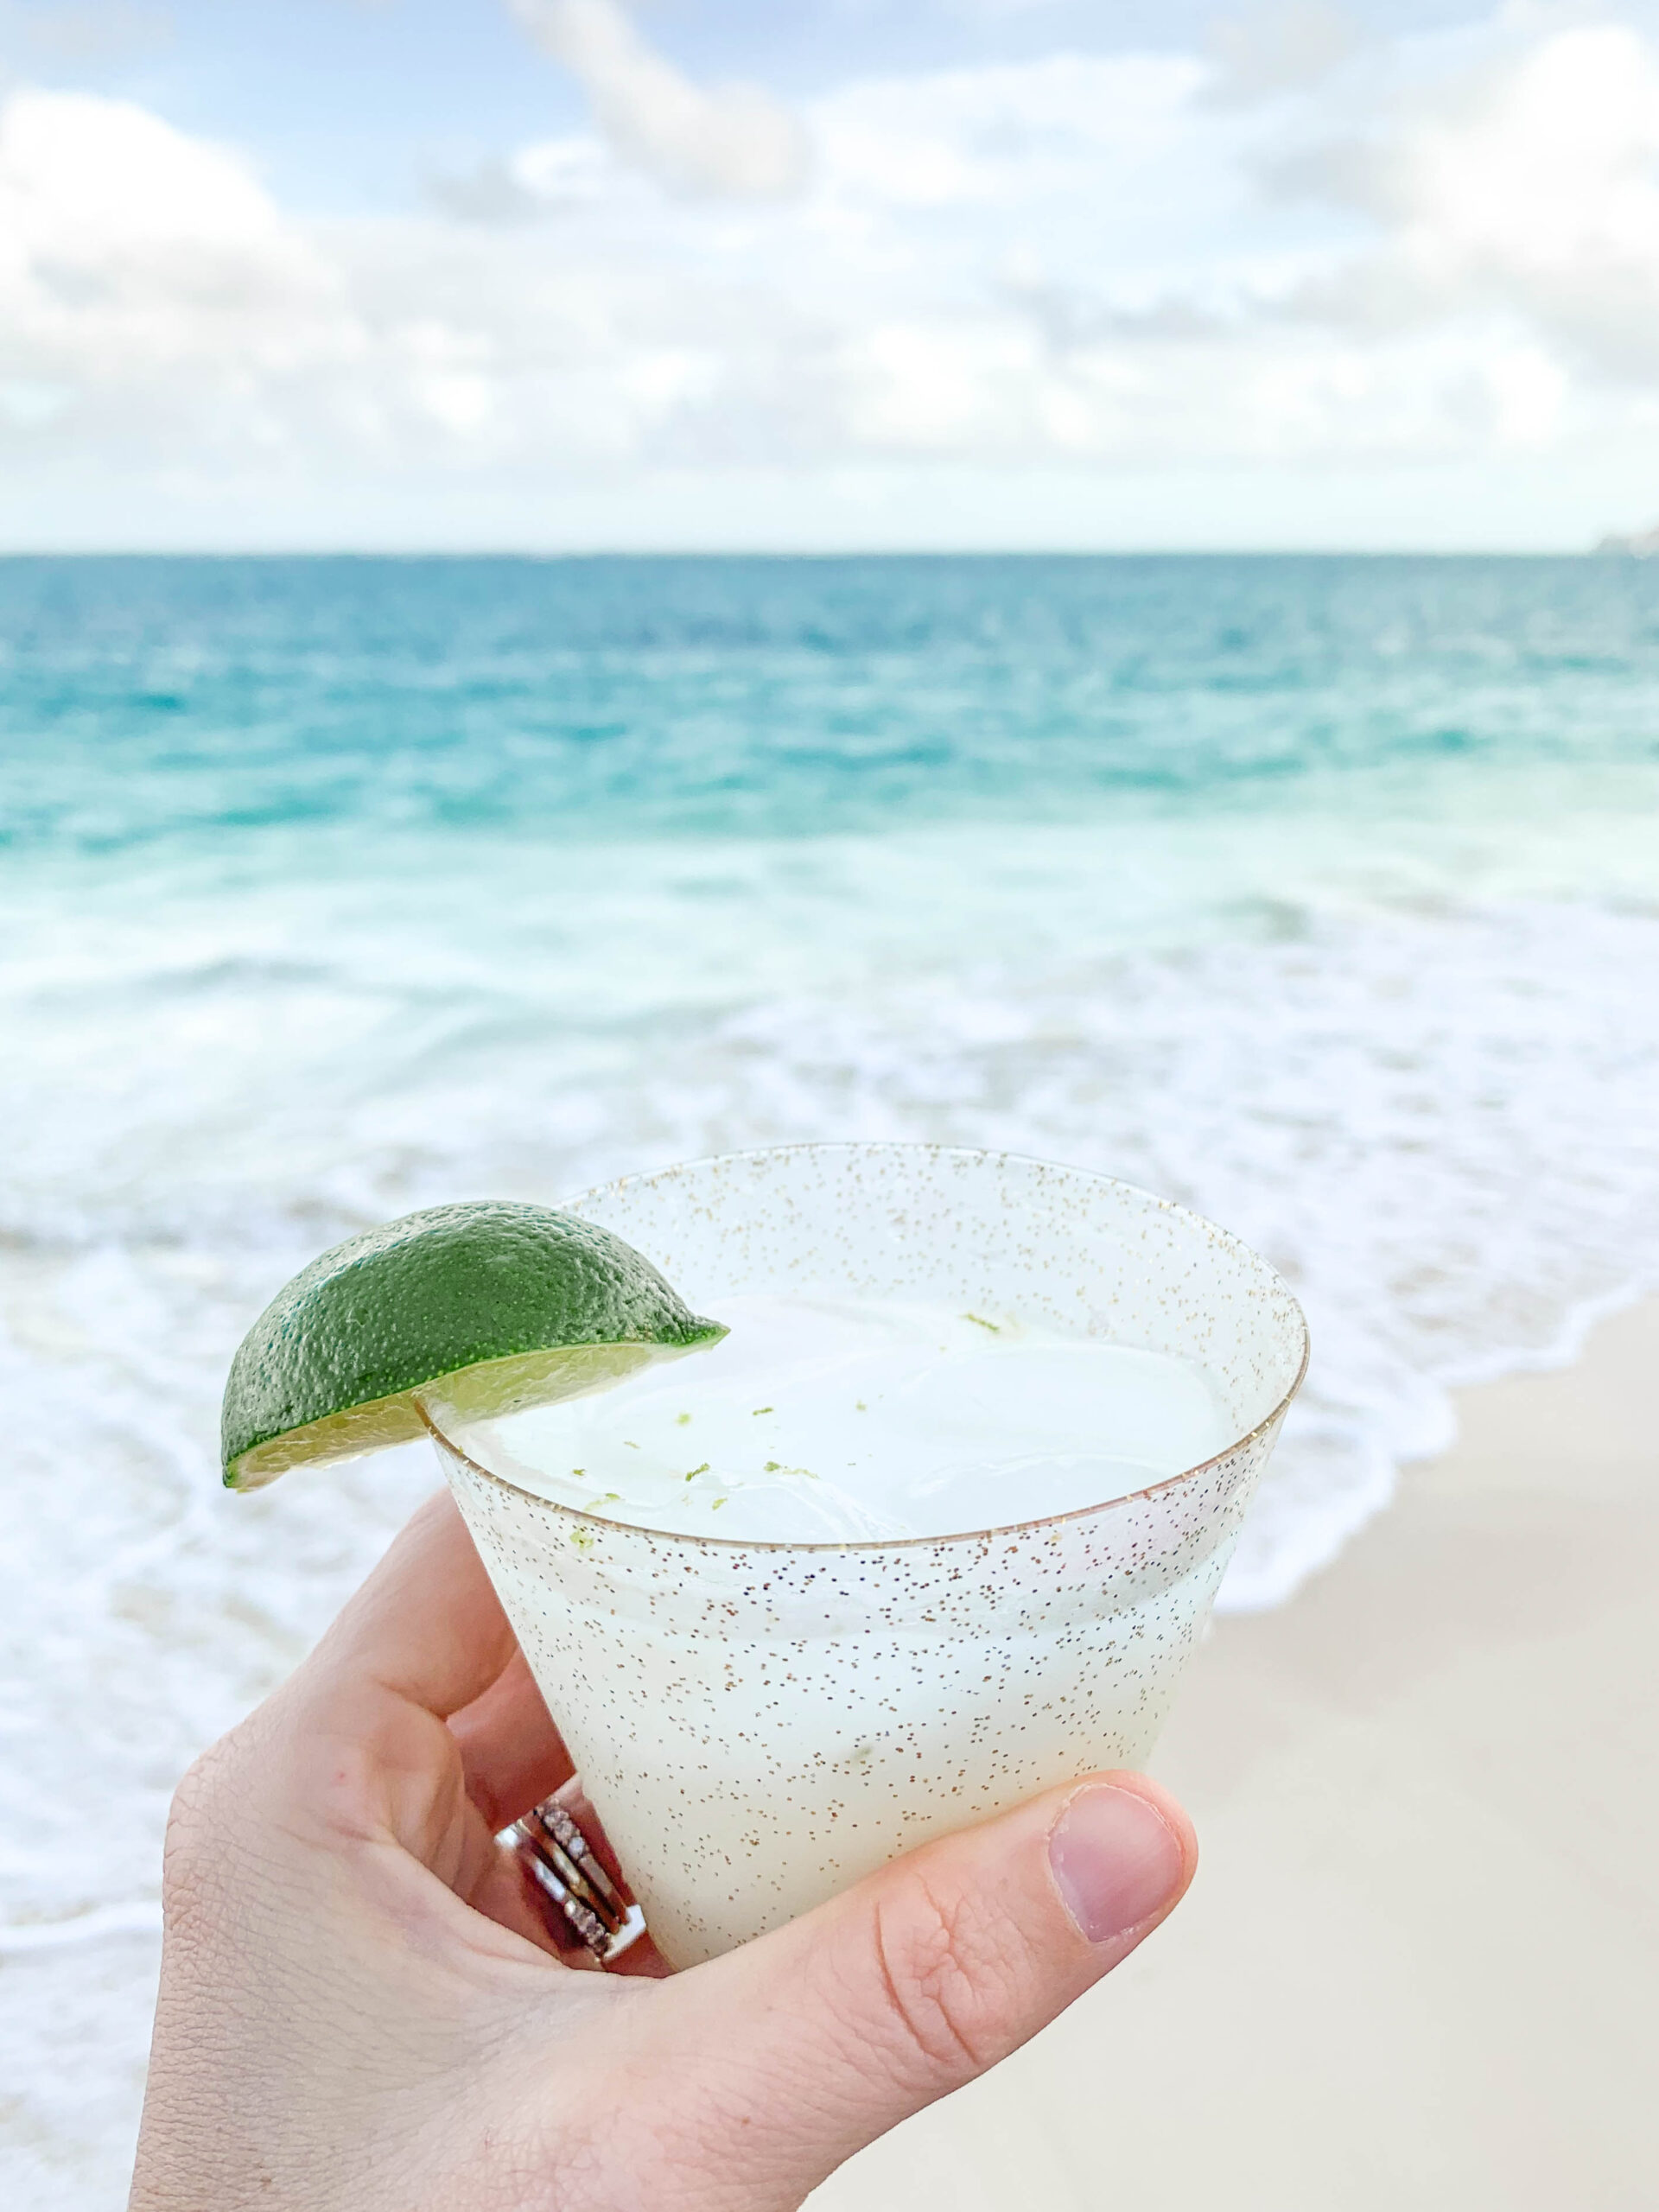 Coconut Lime Margarita - Looking for a fresh margarita recipe? This refreshing Coconut Lime Margarita is simple and delicious! | Coconut Lime Margarita - Coconut Cream Margarita - Simple Margarita Recipe